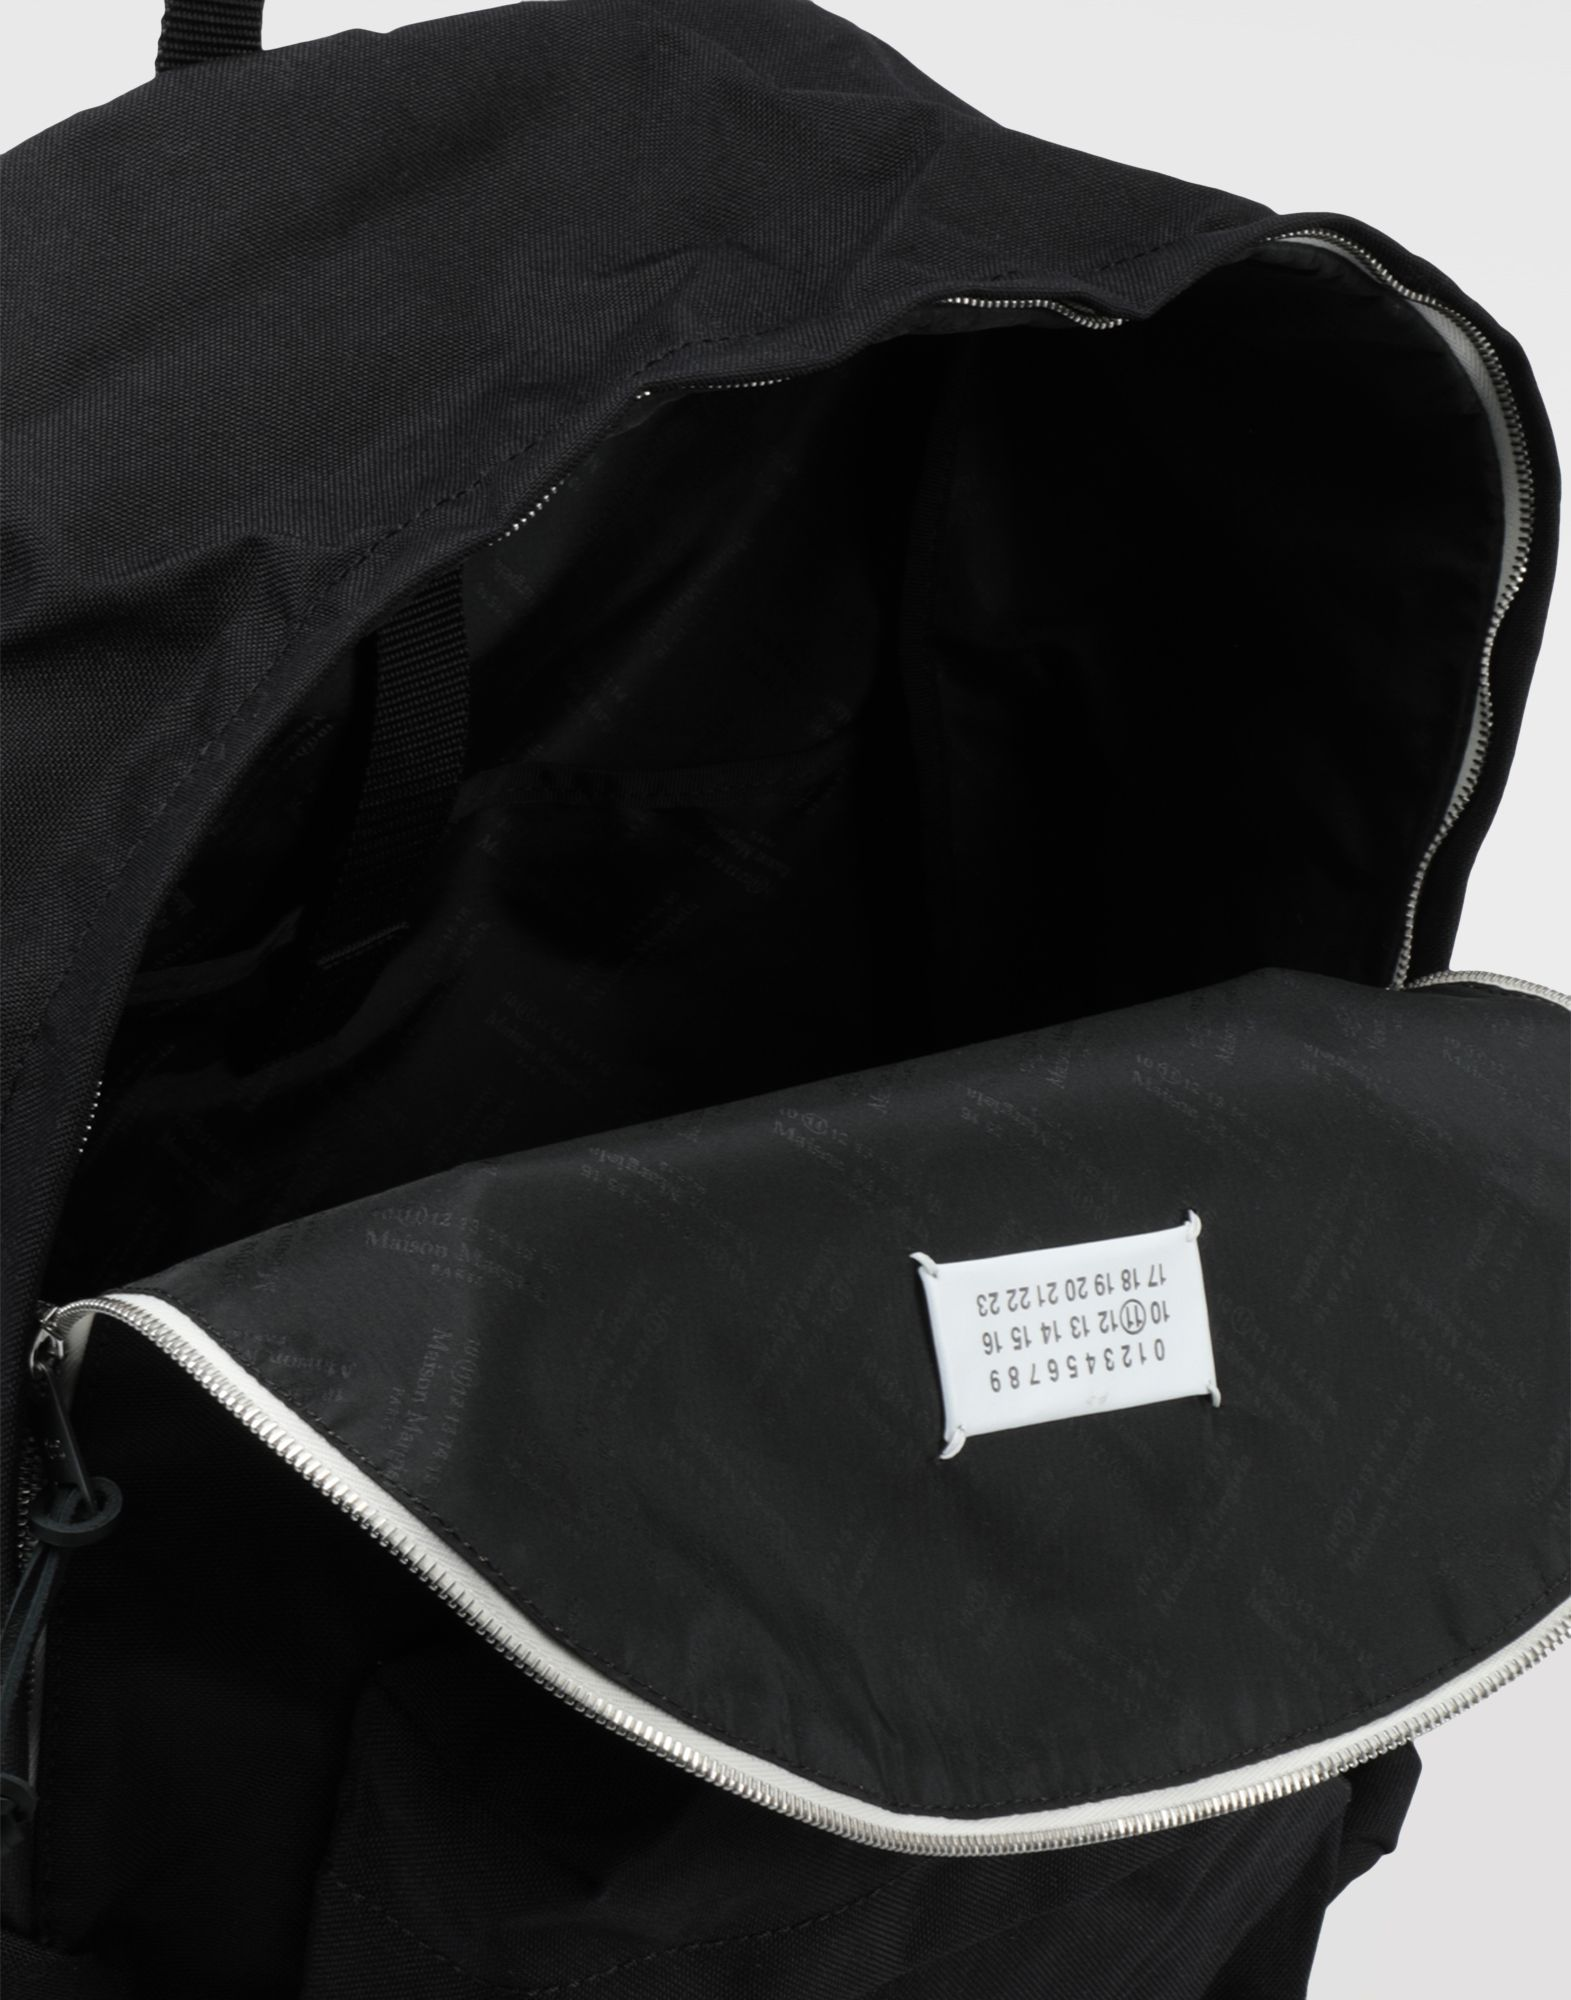 MAISON MARGIELA 'Stereotype' backpack Rucksack Man a